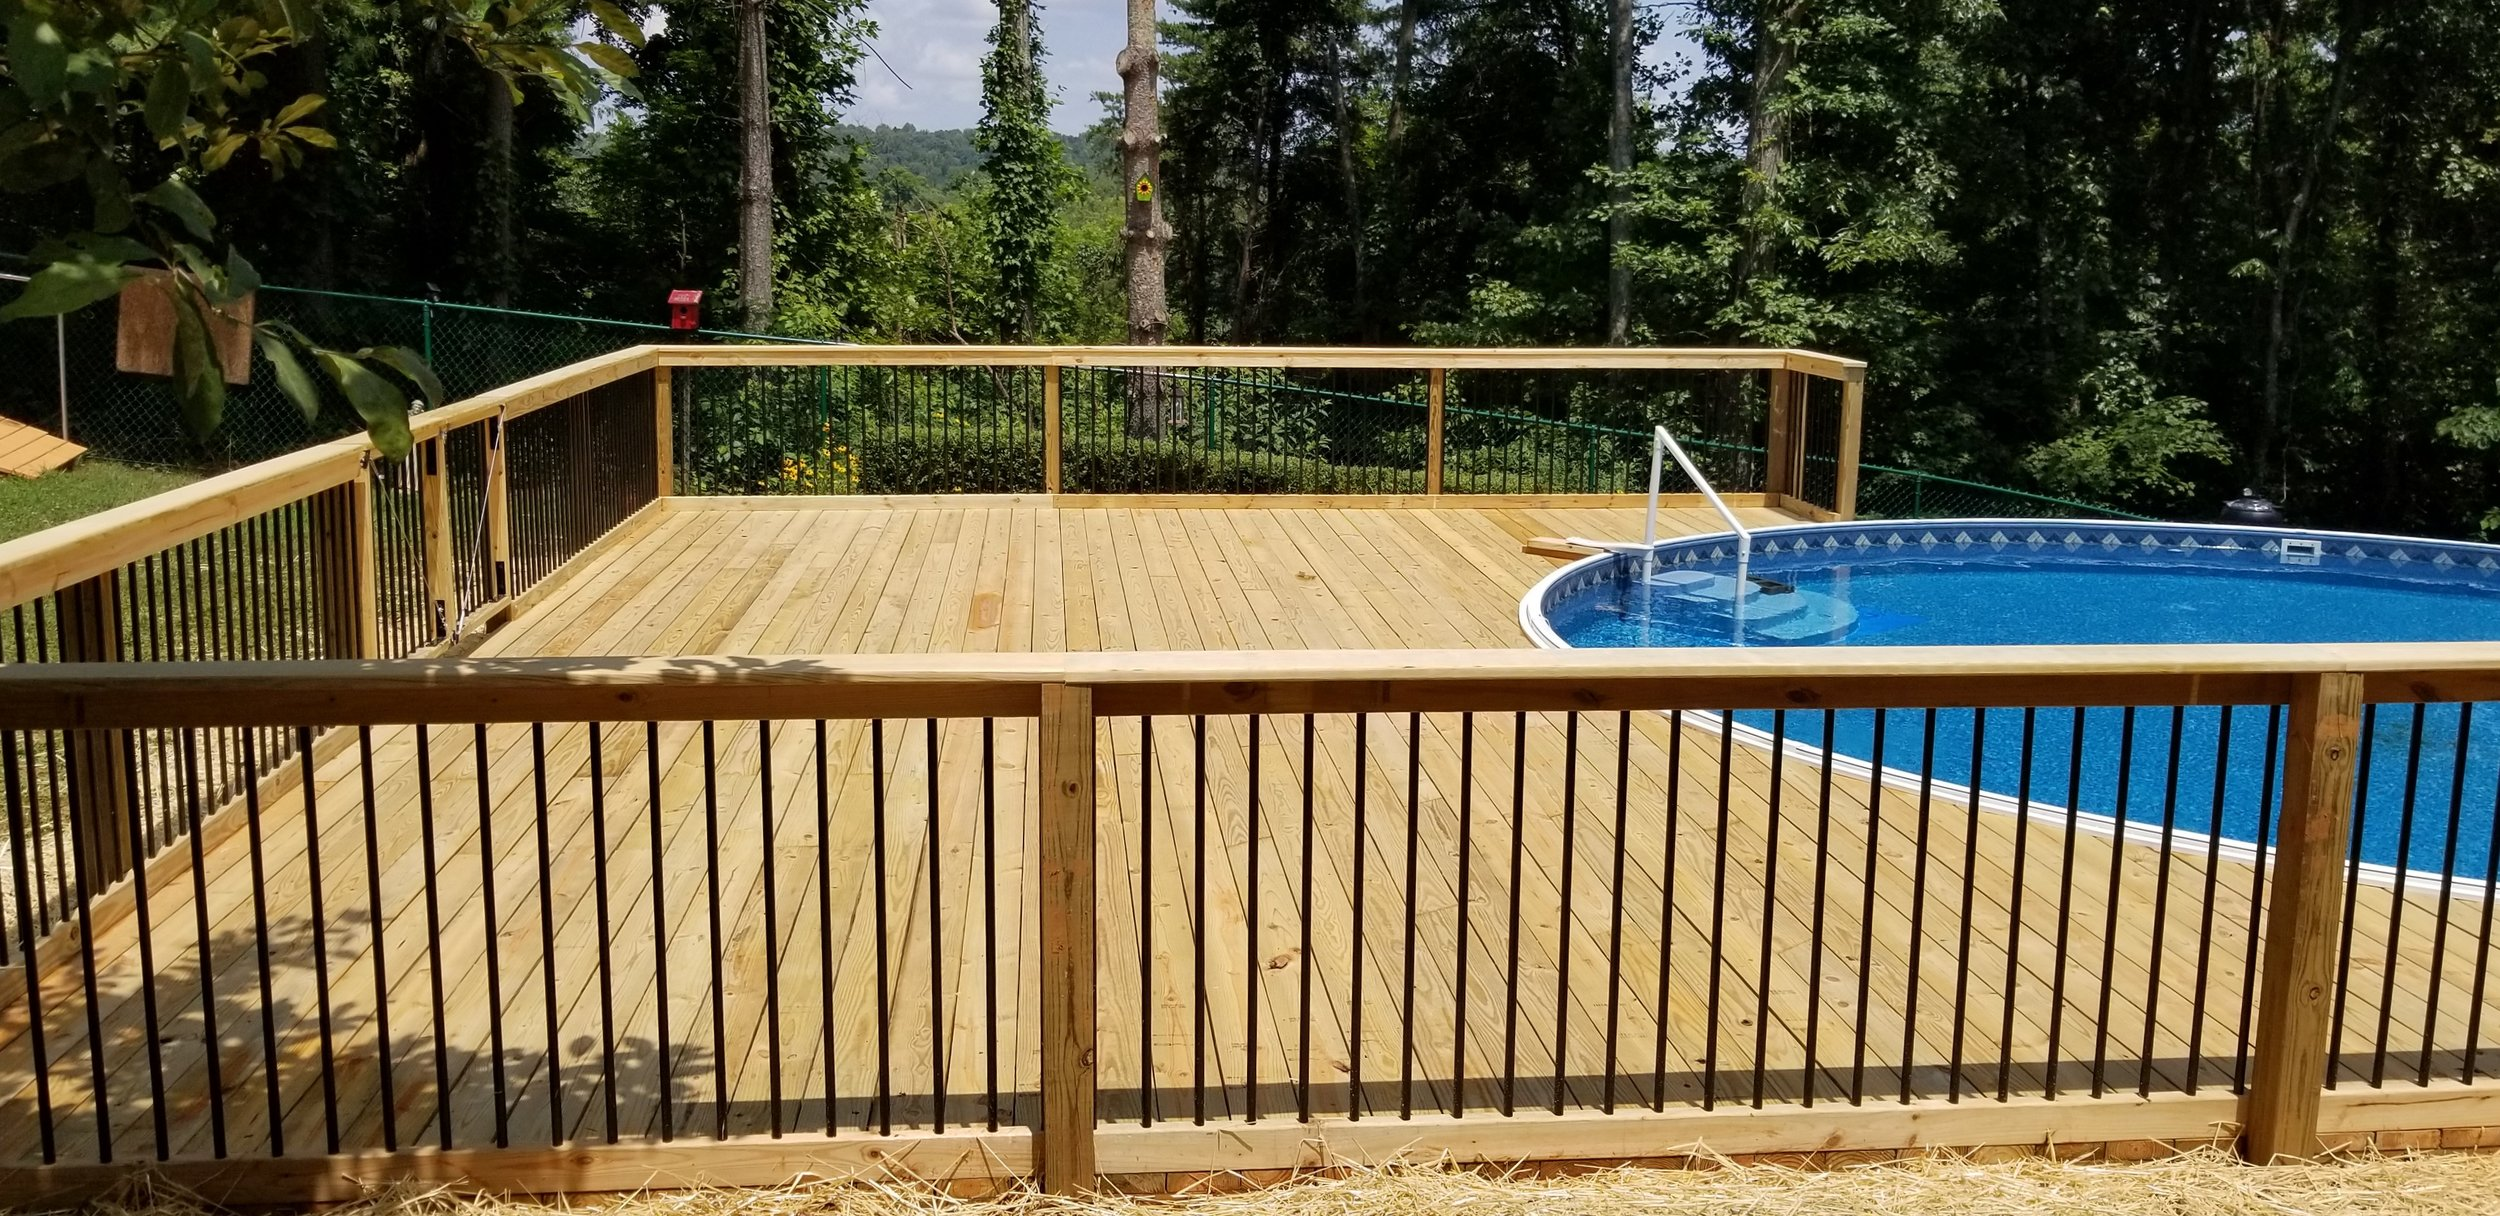 New Round Pool Deck 720 SQ. Feet (Jonesborough, Tn)